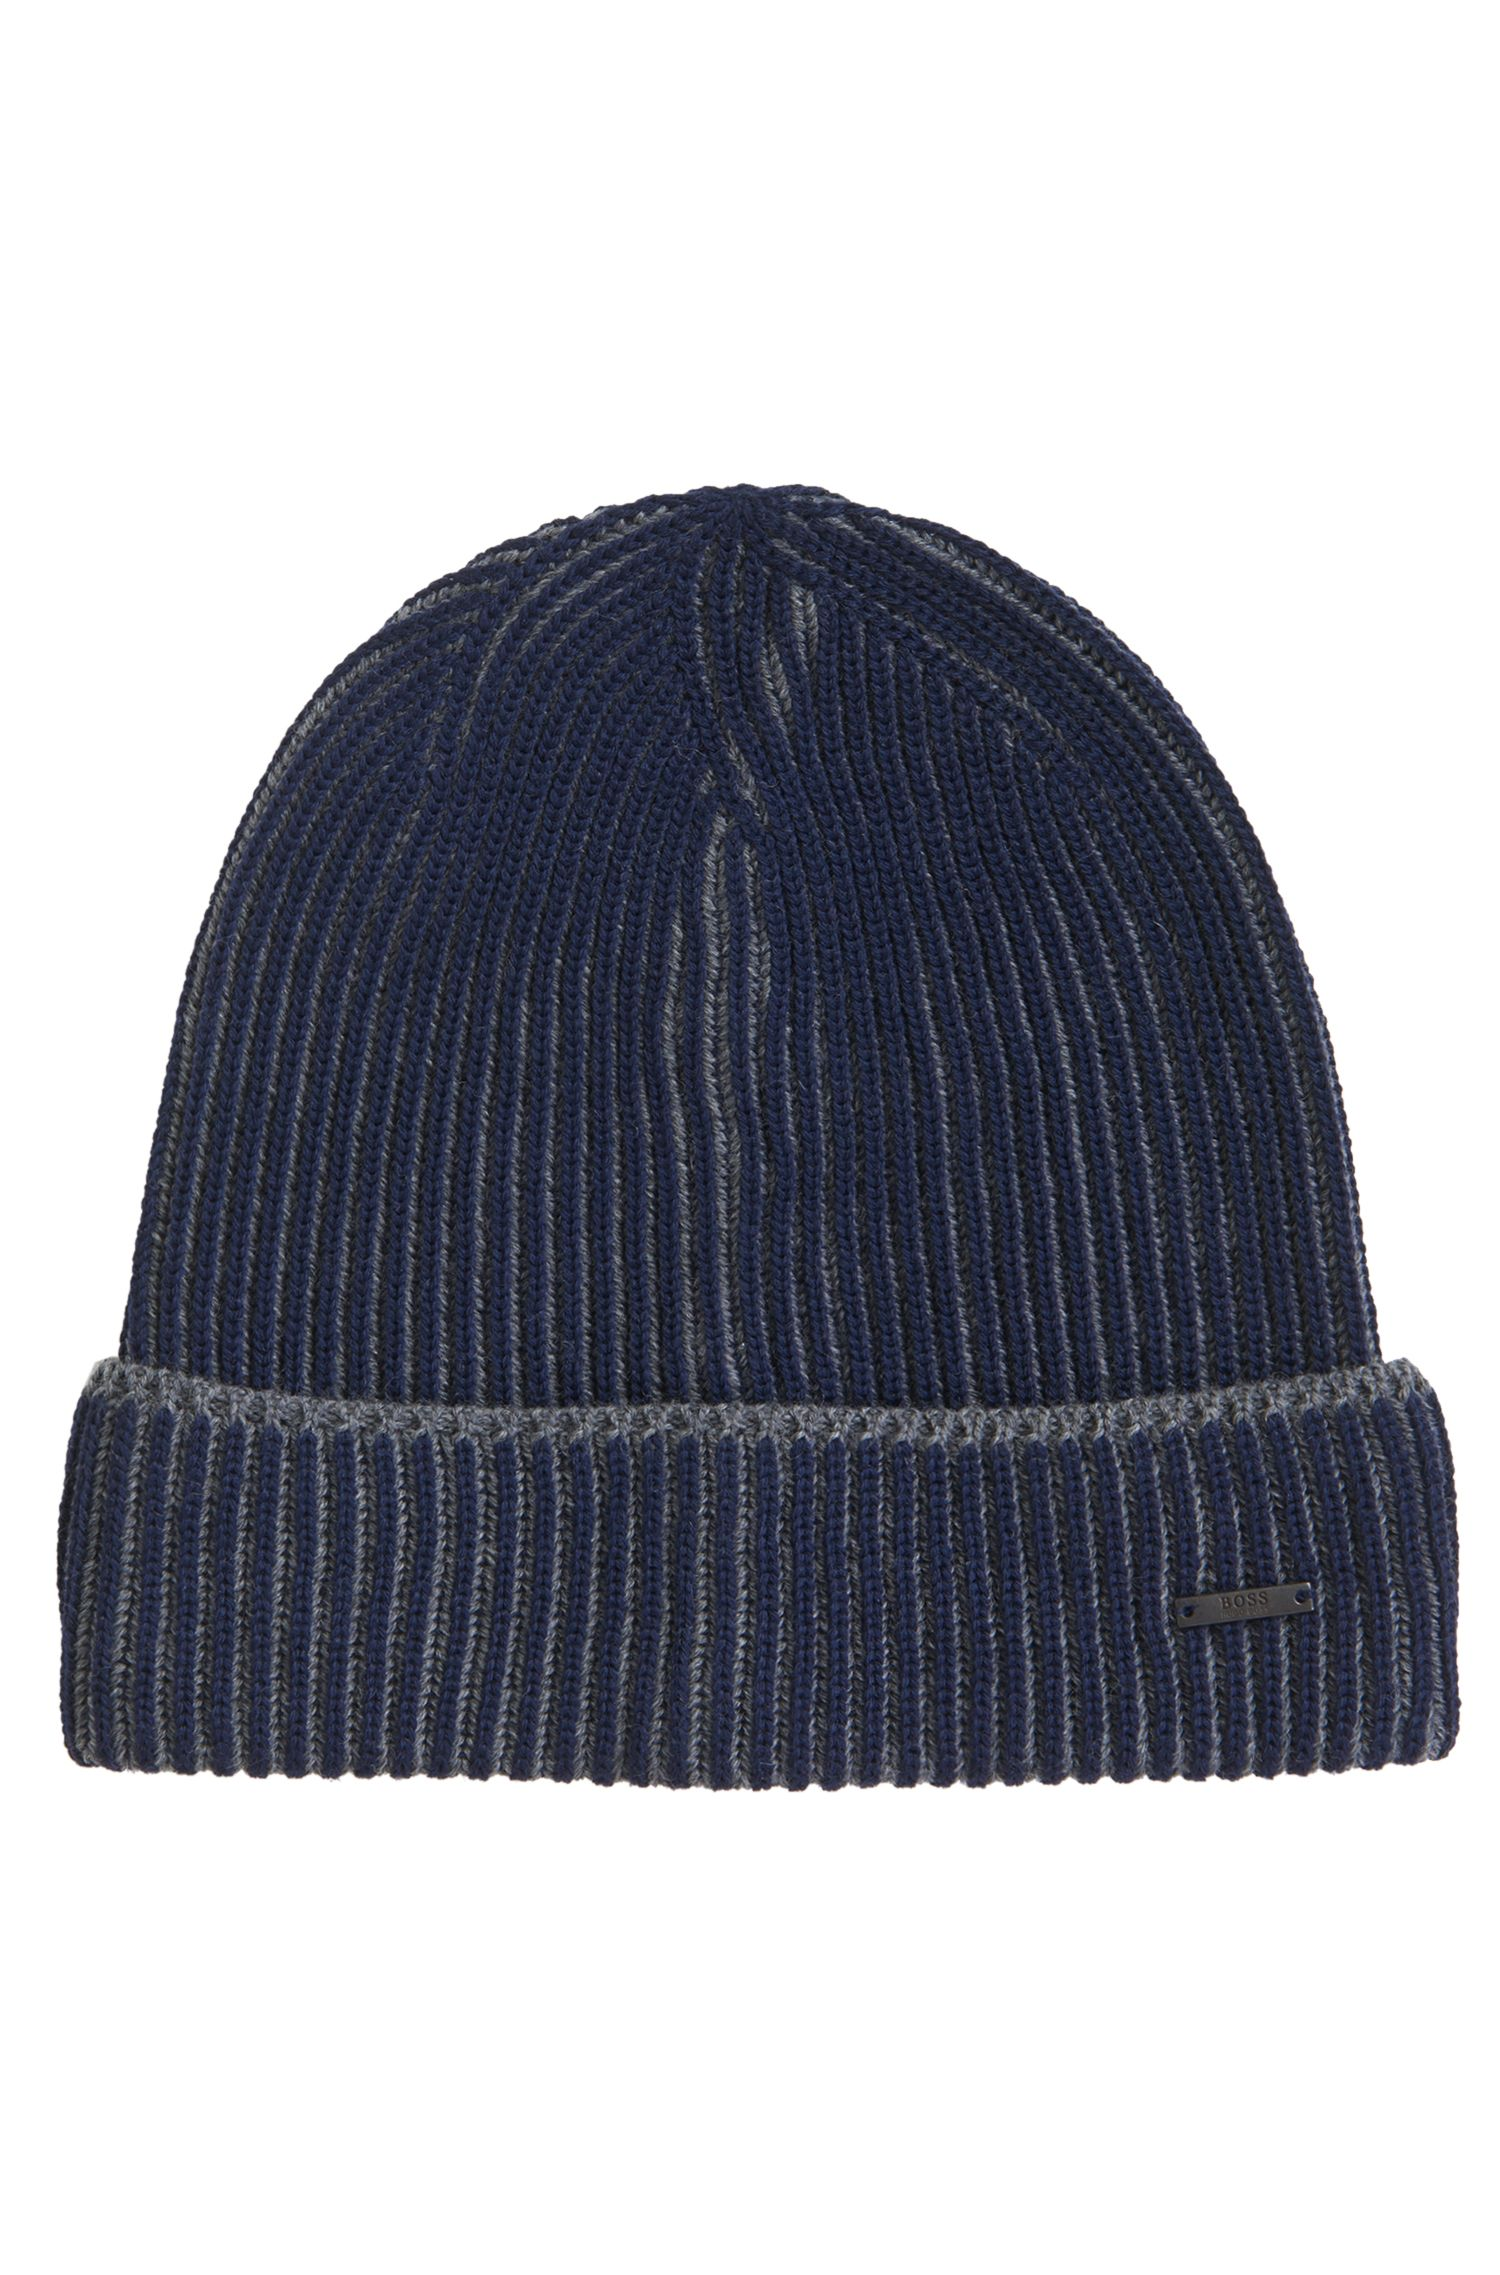 Virgin Wool Beanie | Balerio WS